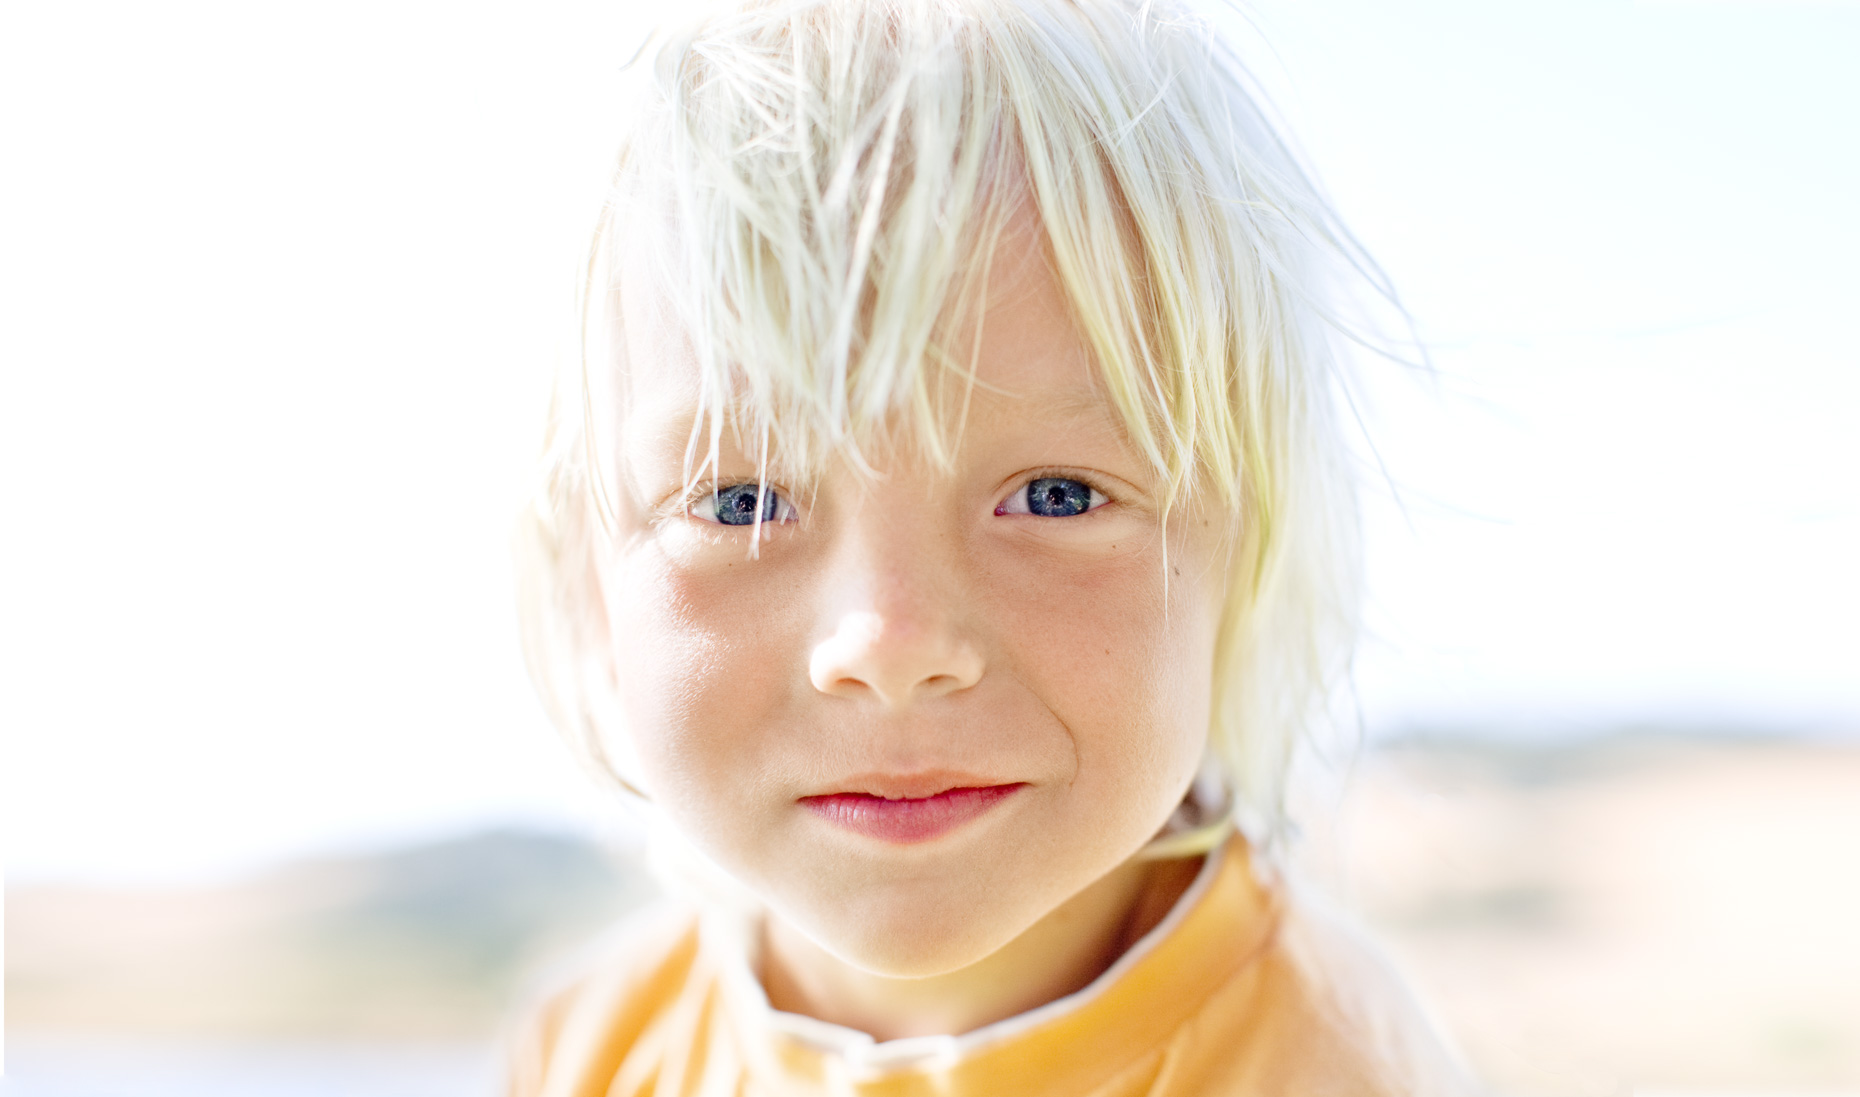 child-portrait-blond-close-up-location-curtis-myers-advertising